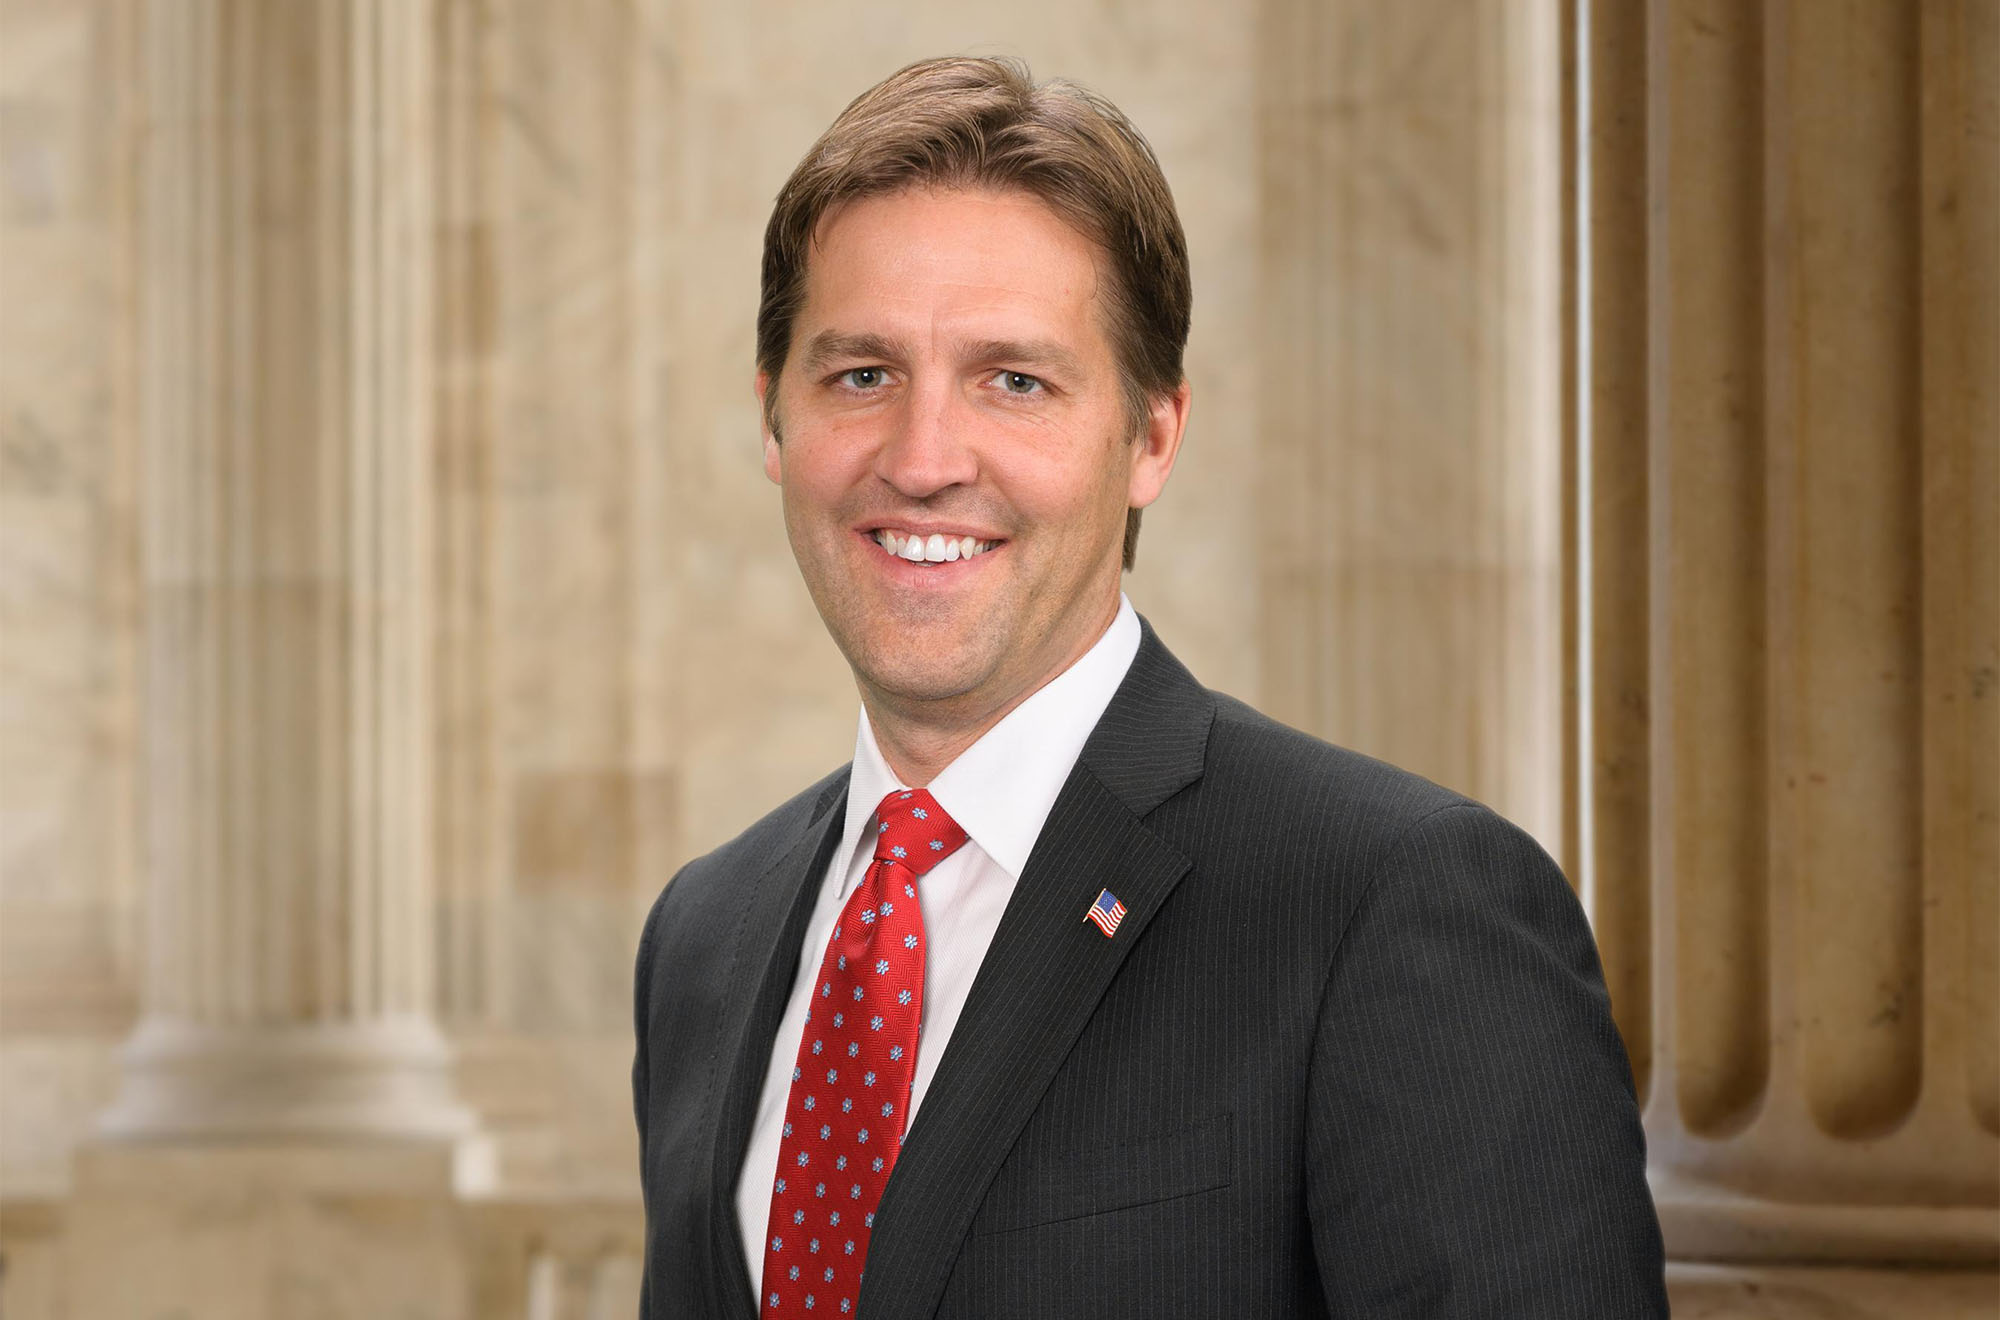 Sen Ben Sasse reiterated his support for Supreme Court nominee Brett Kavanaugh on Thursday afternoon after meeting with him earlier in the day